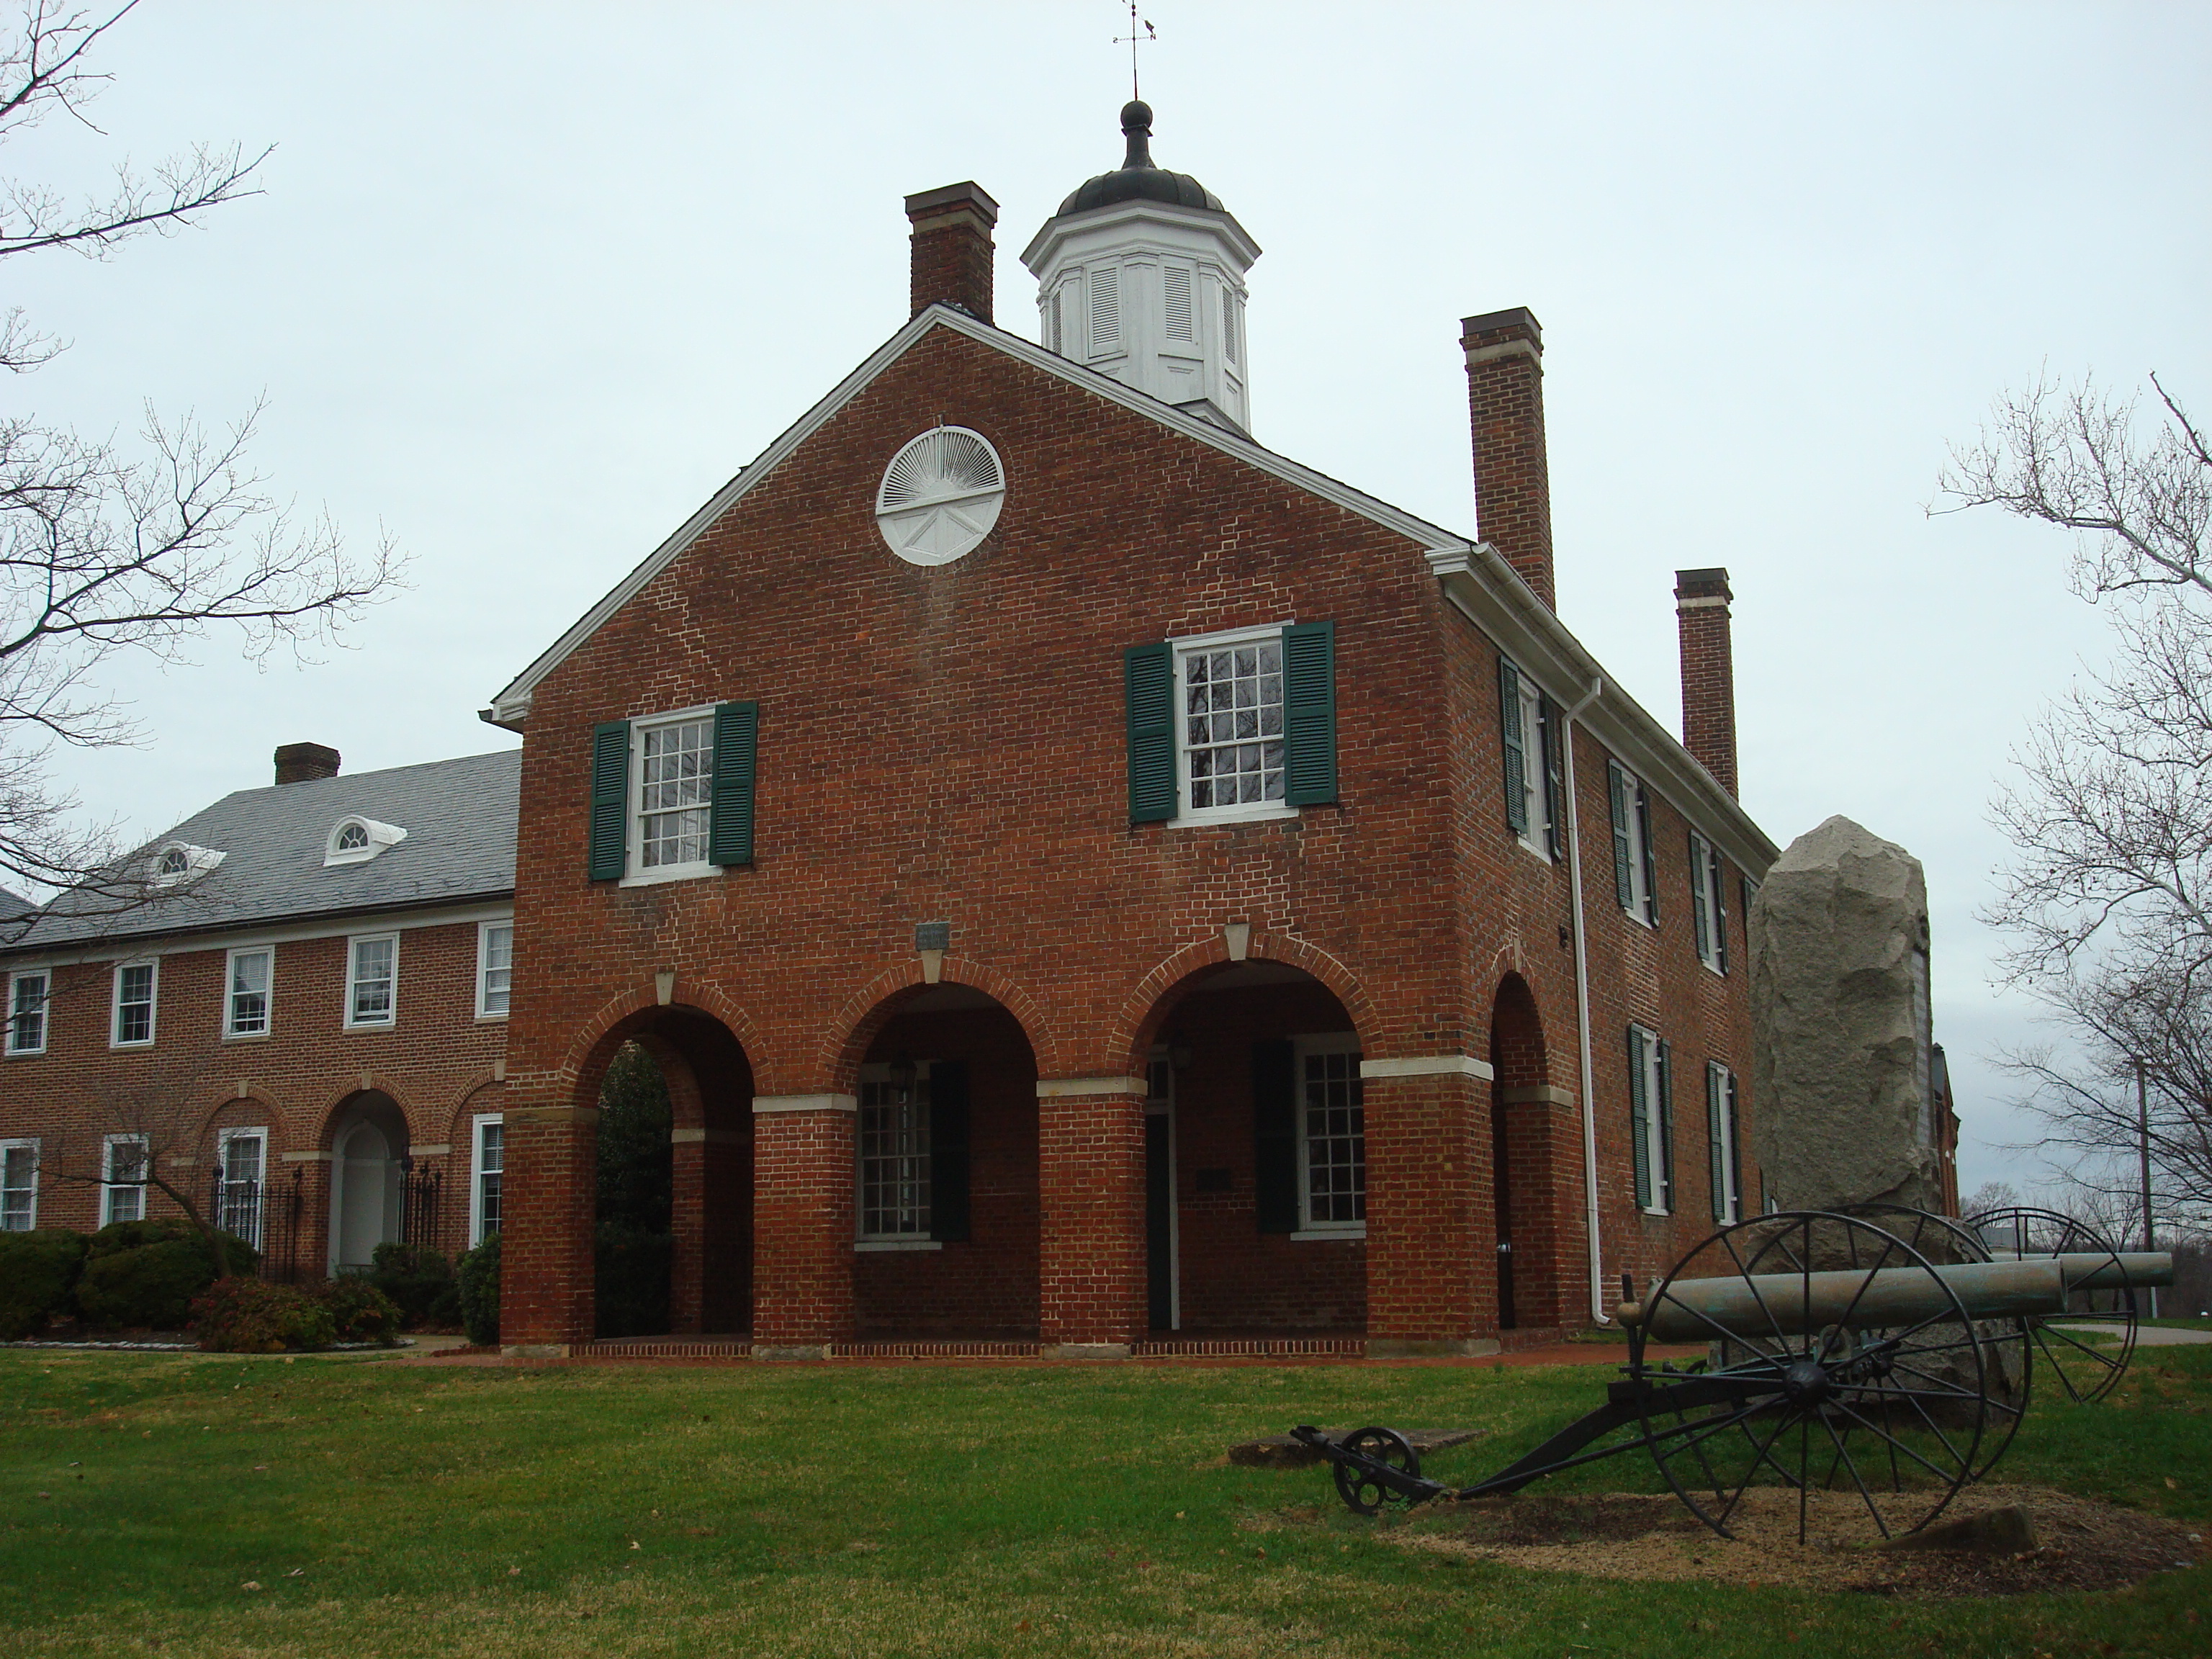 Historic Fairfax County Courthouse